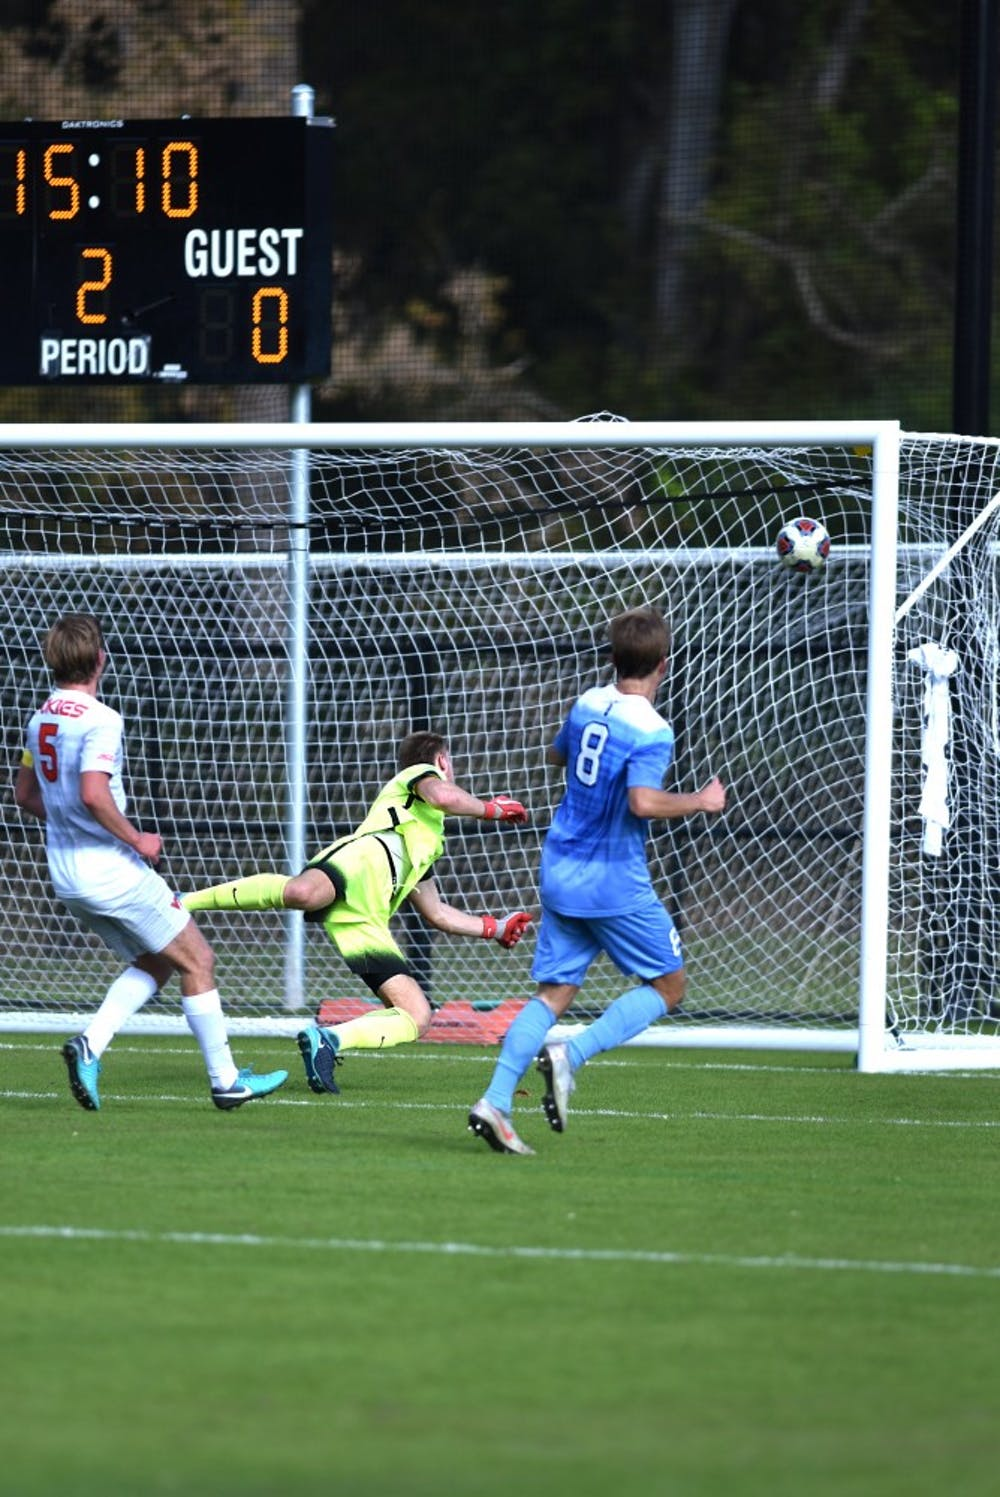 UNC men's soccer advances to ACC semifinals after win over Virginia Tech